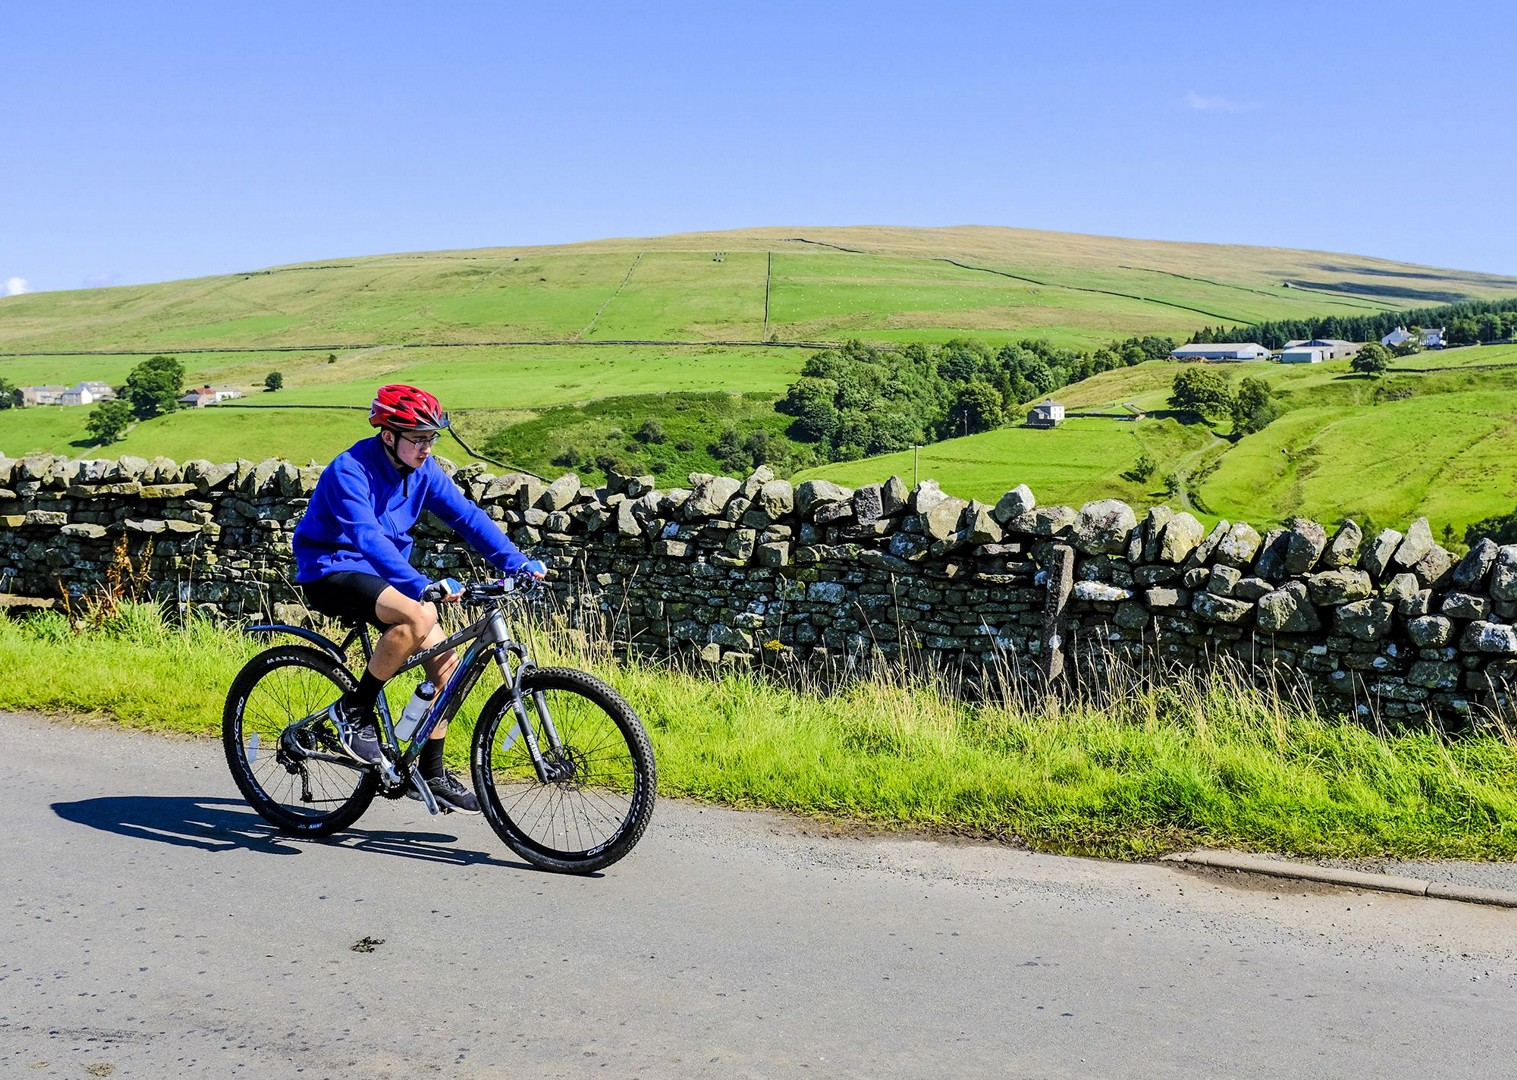 traditional-british-fields-meet-friends-group-trip-cycling-holiday.jpg - UK - C2C - Coast to Coast - Supported Leisure Cycling Holiday - Leisure Cycling